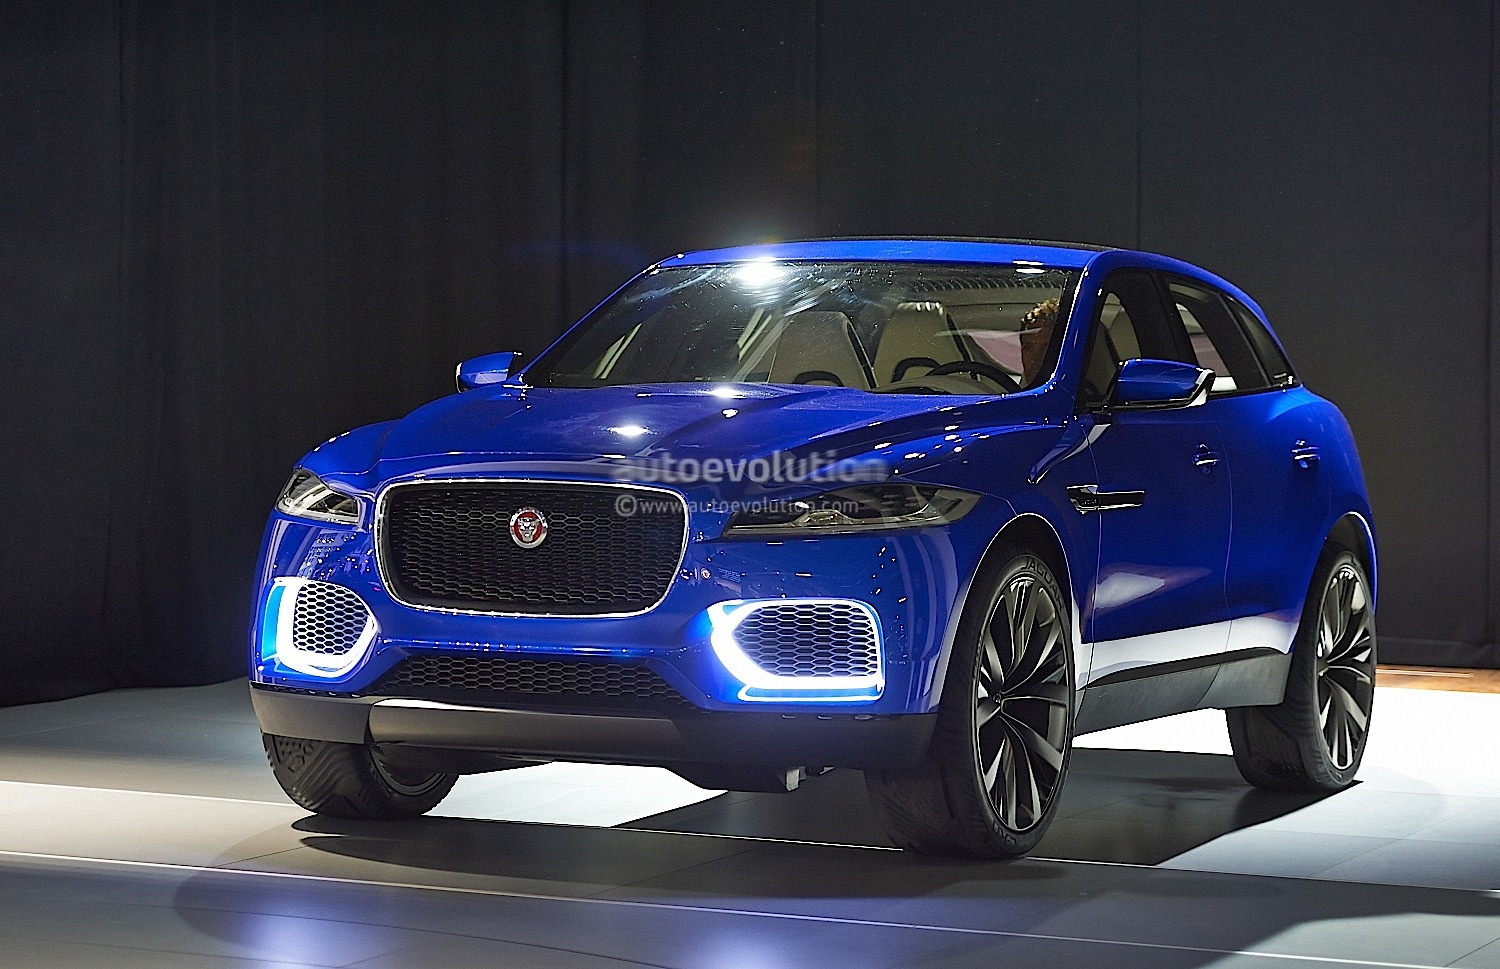 Most Expensive Car In The World >> Jaguar F-PACE: Performance Crossover Name Revealed in Detroit, to Debut in 2016 - autoevolution